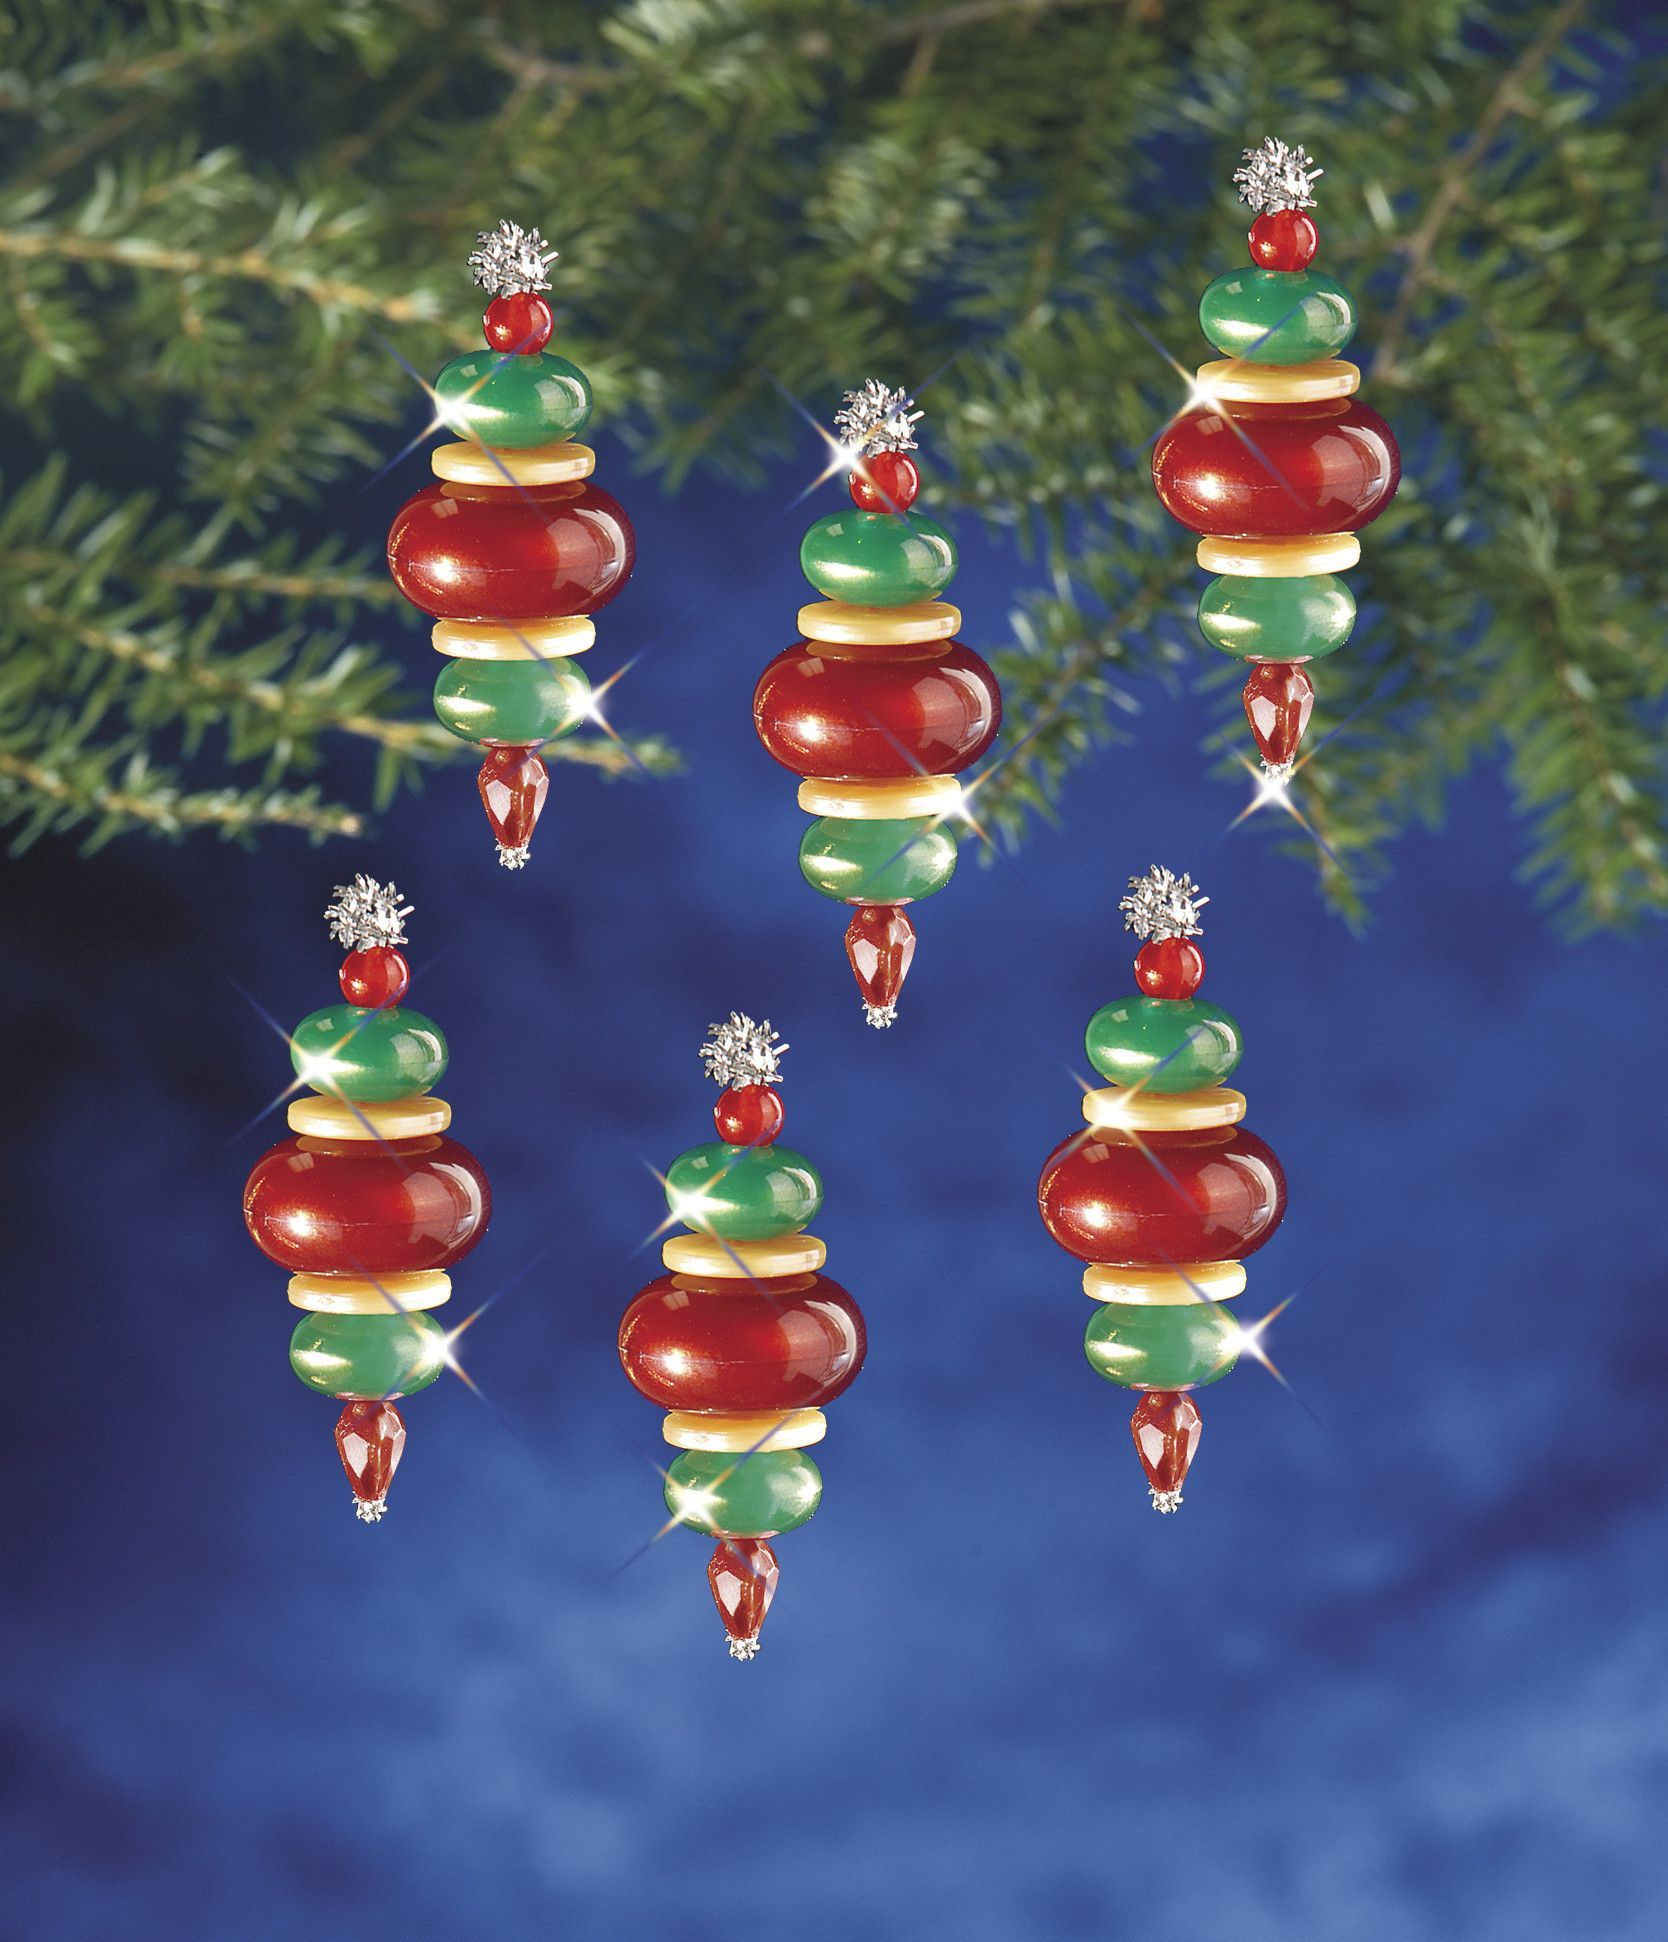 Beadery Holiday Ornament Kit Victorian Baubles 5941 Christmas Ornament Crafts Holiday Beading Christmas Ornaments